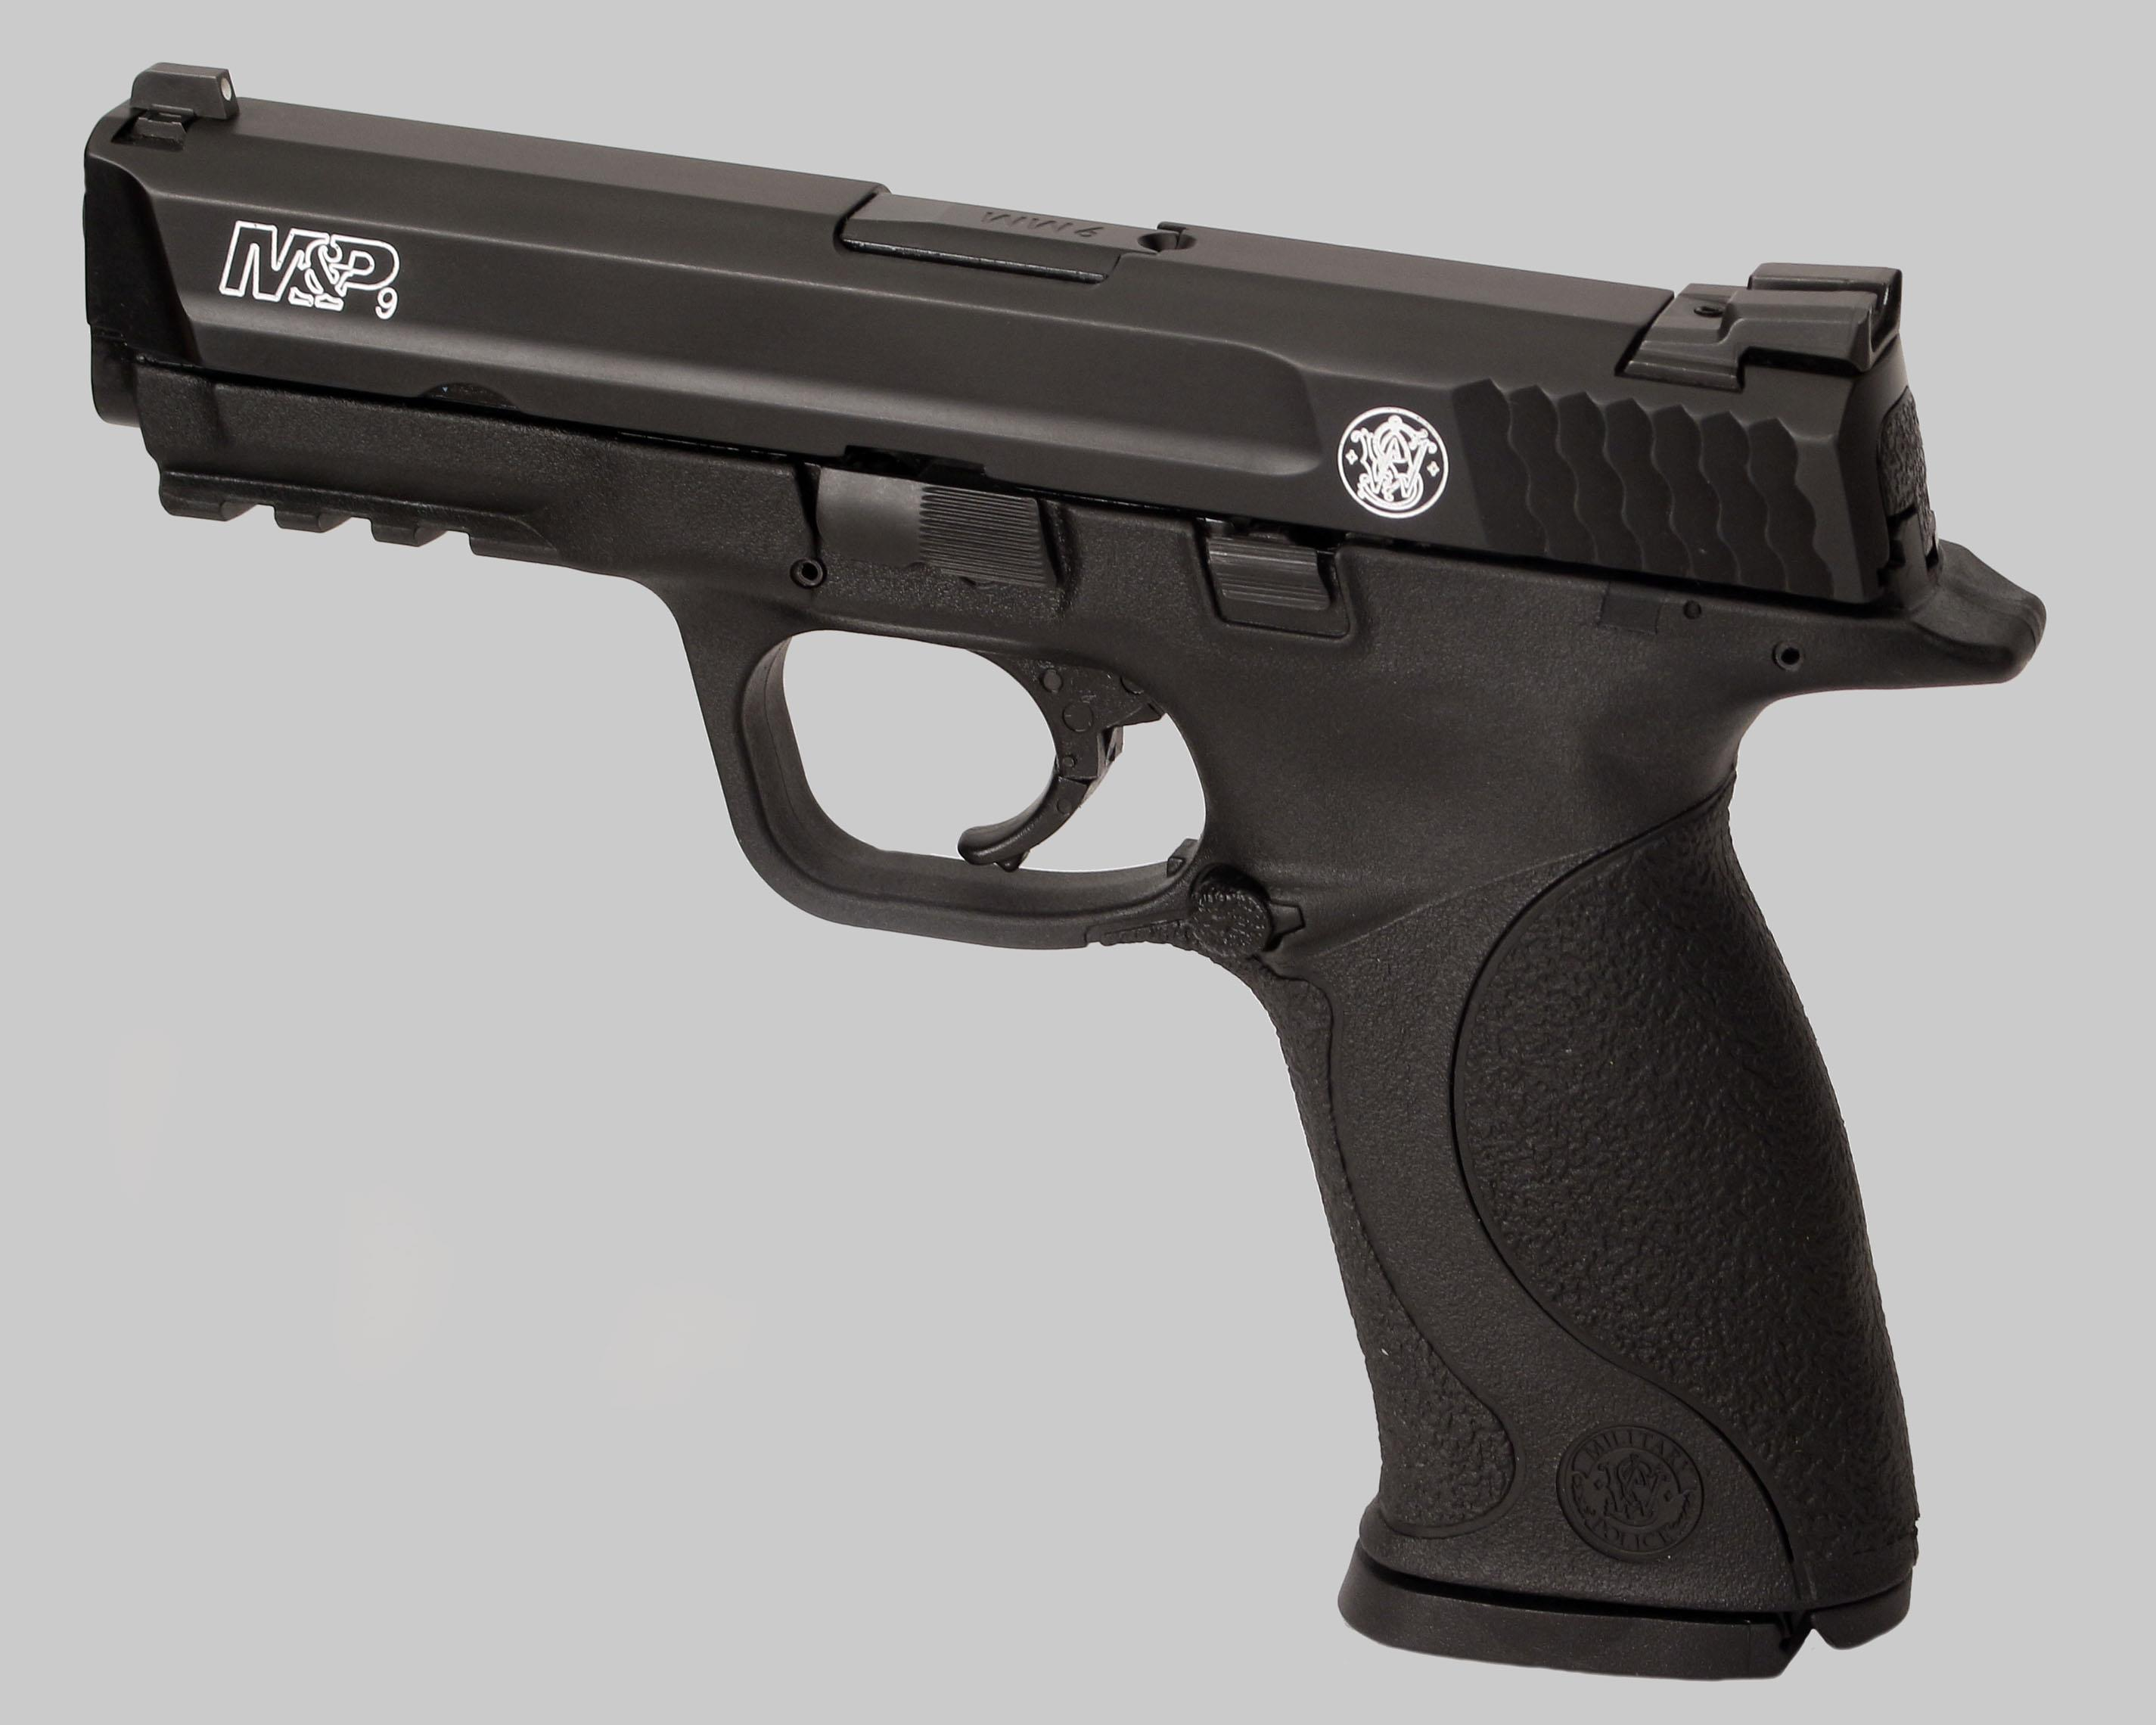 Smith & Wesson M&P 9mm Pistol for sale